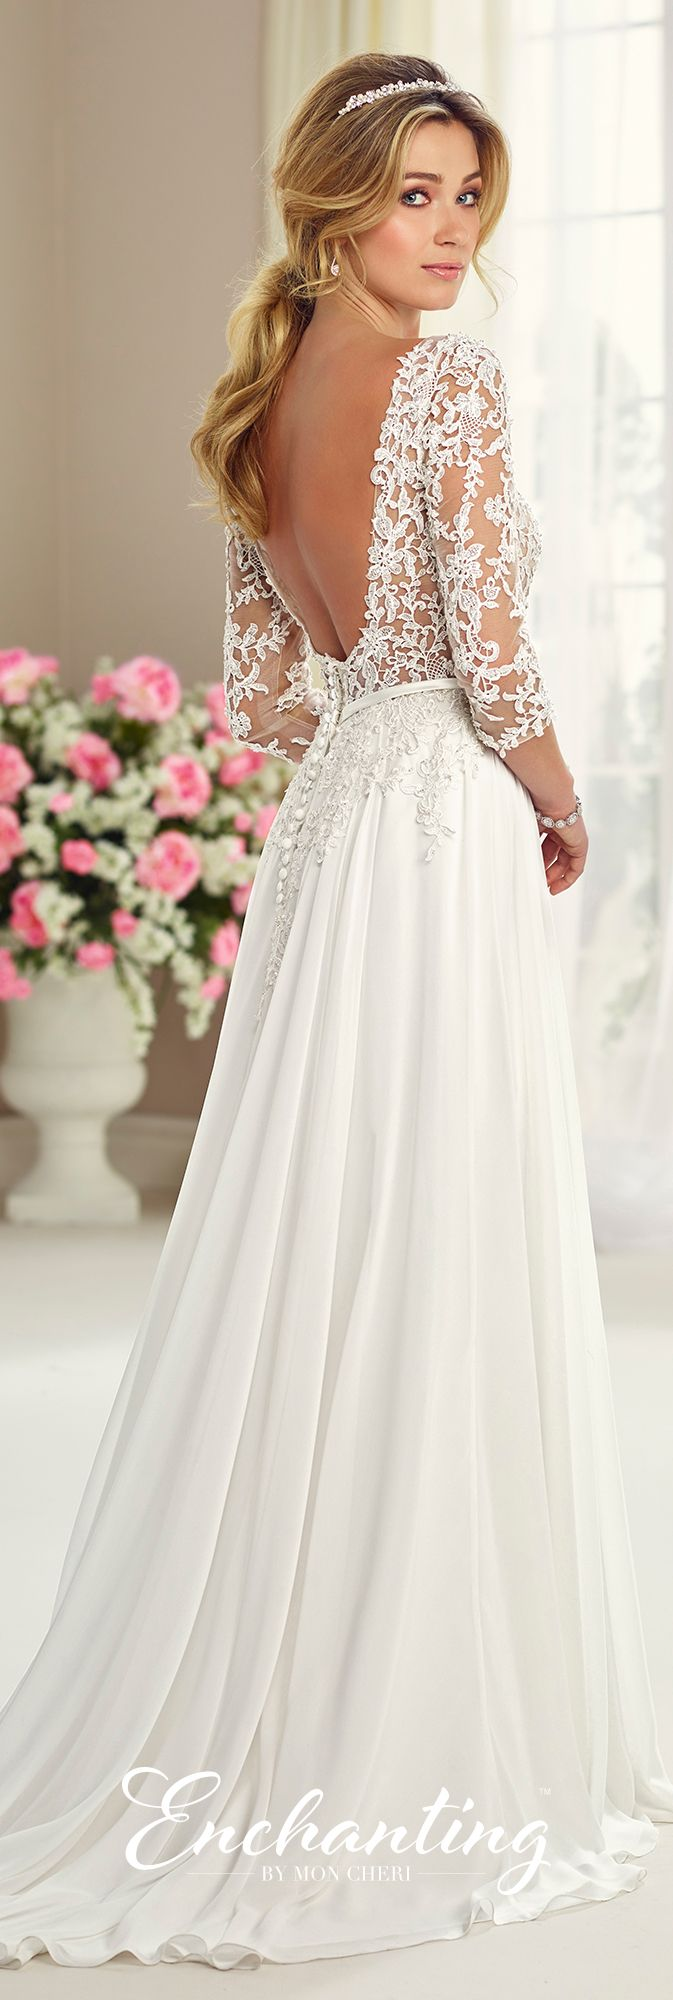 Best 25+ Wedding dresses ideas on Pinterest | Dream wedding ...